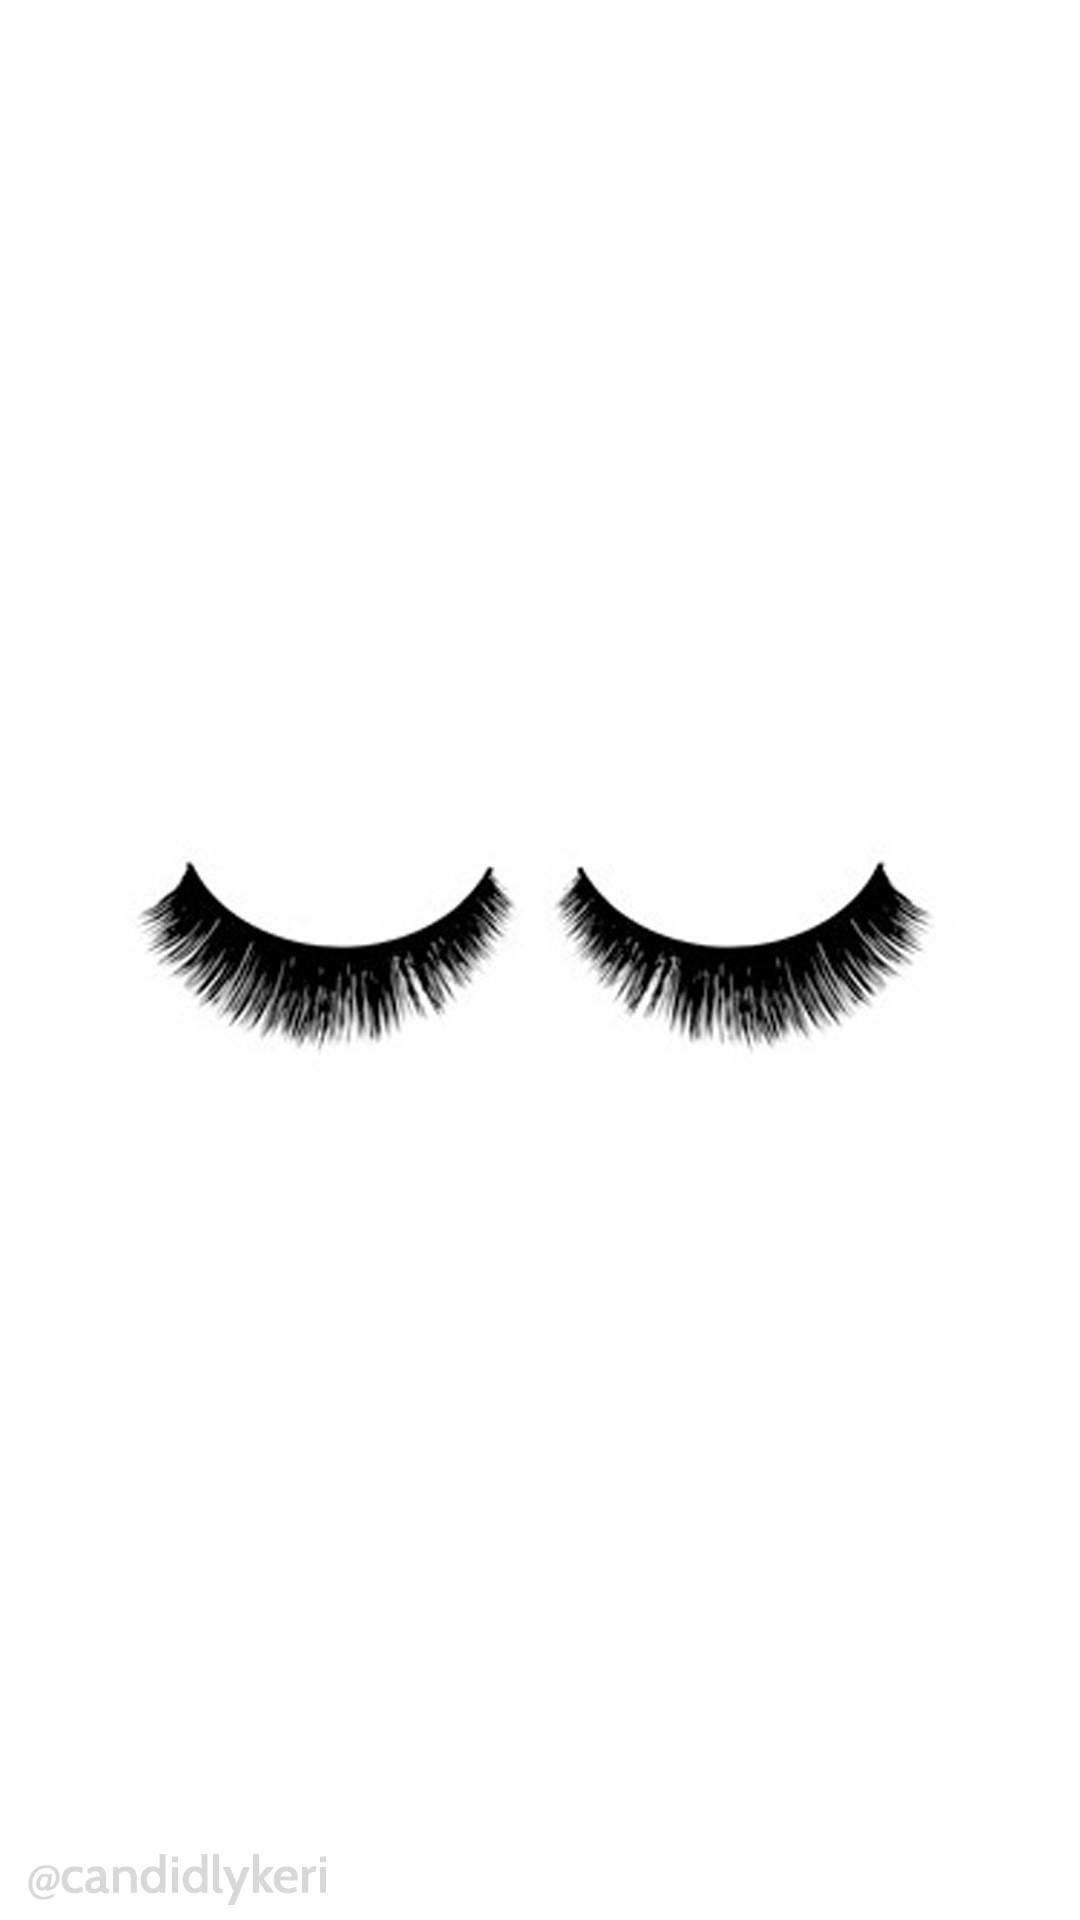 Eyelashes Fake lashes sleepy background wallpaper you can download for free  on the blog! For